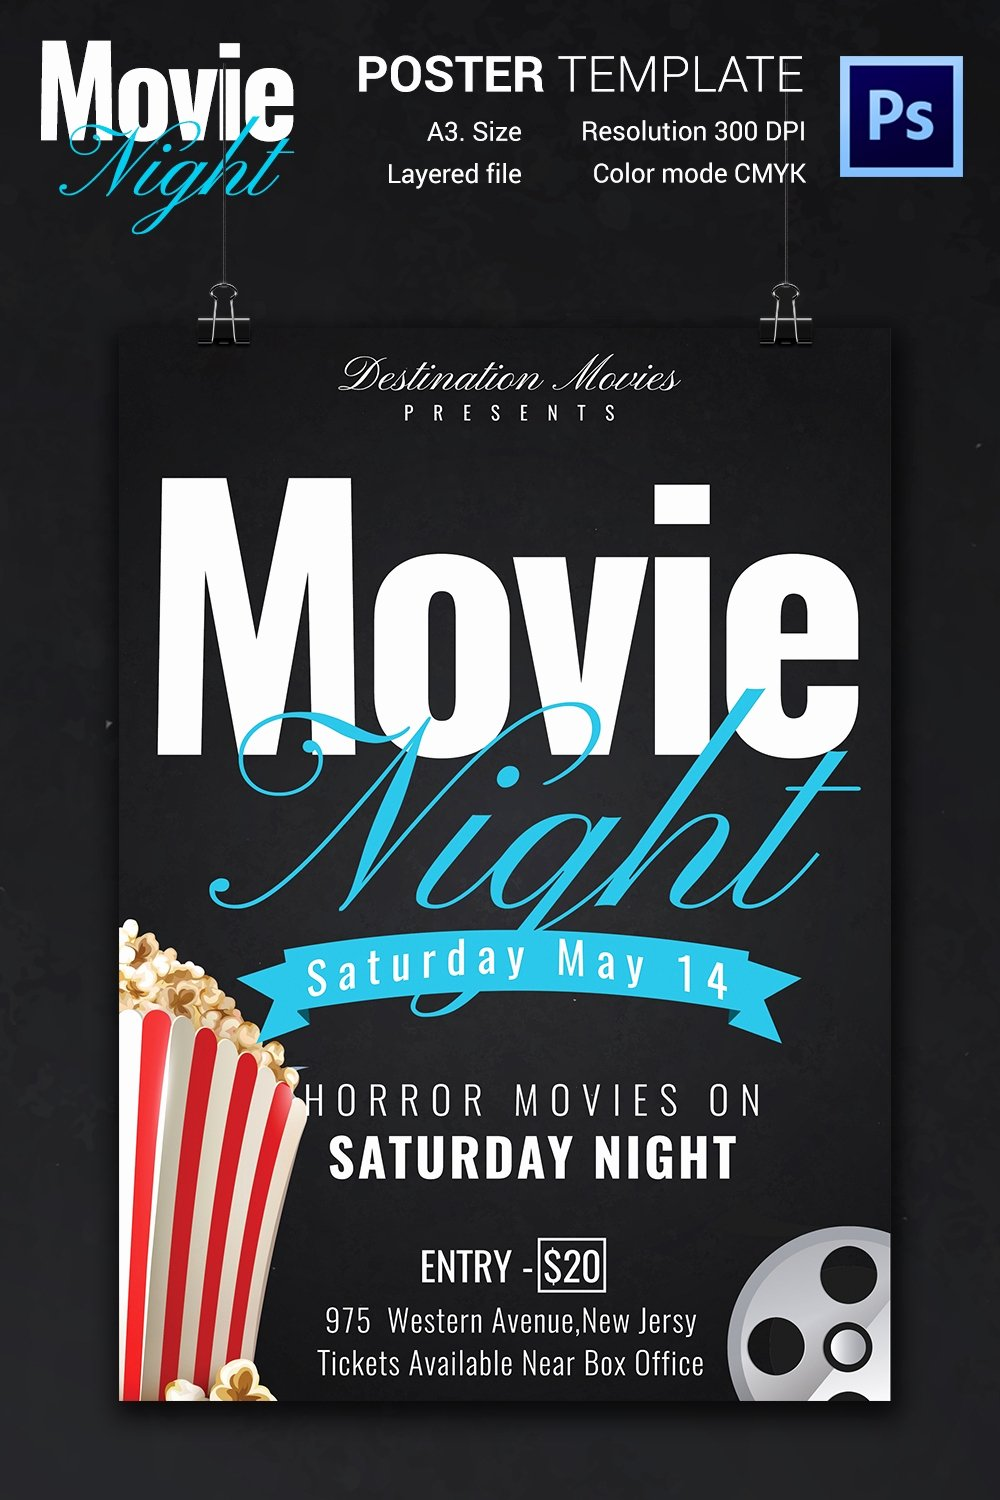 Free Movie Night Flyer Template Awesome Movie Night Flyer Template 25 Free Jpg Psd format